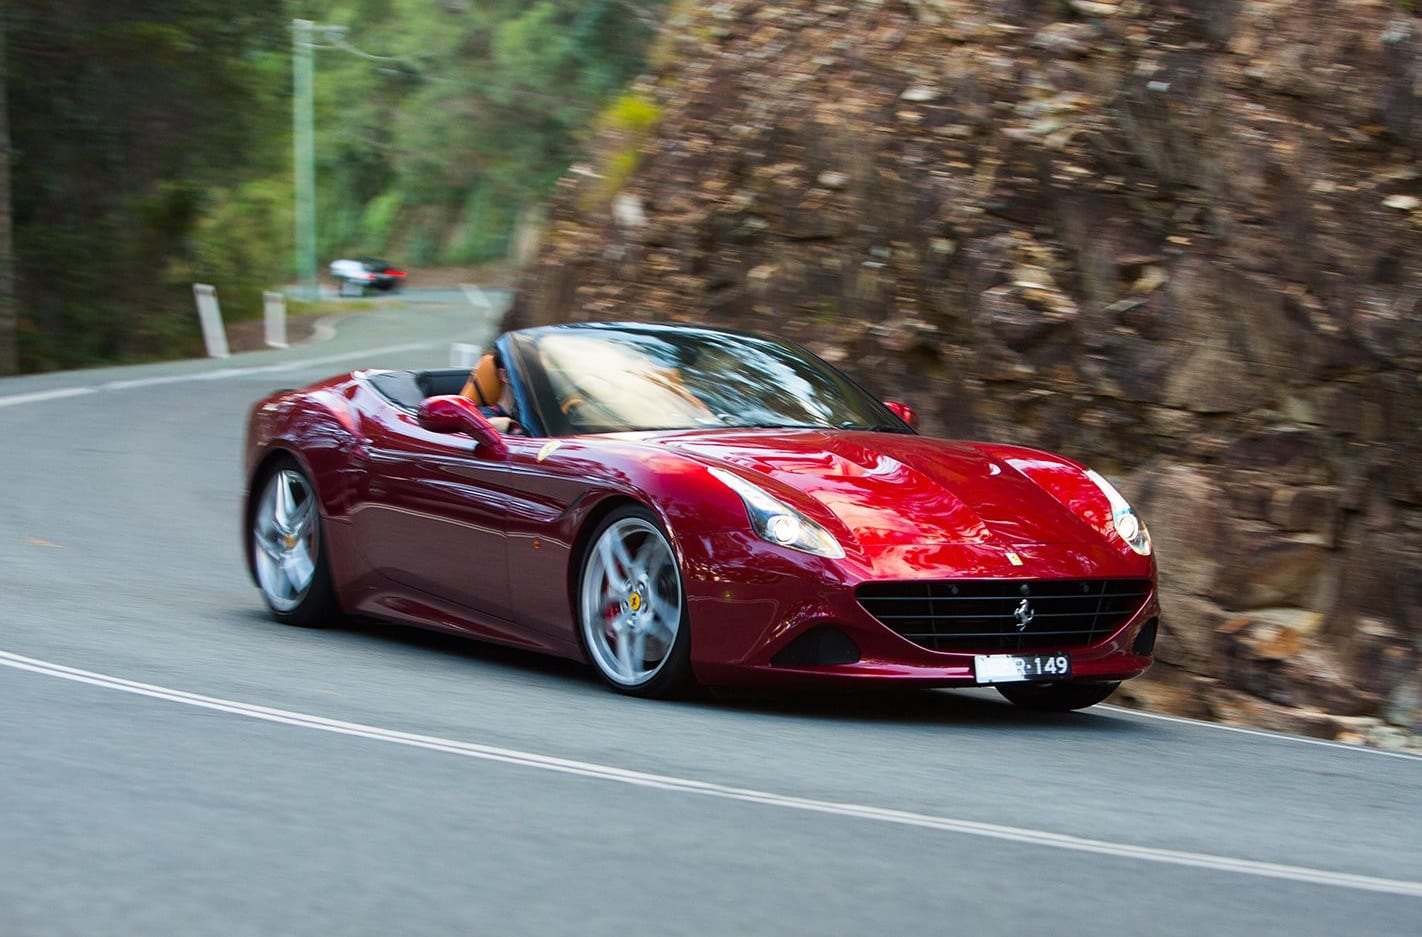 Aussies snapping up sports and premium cars in 2015